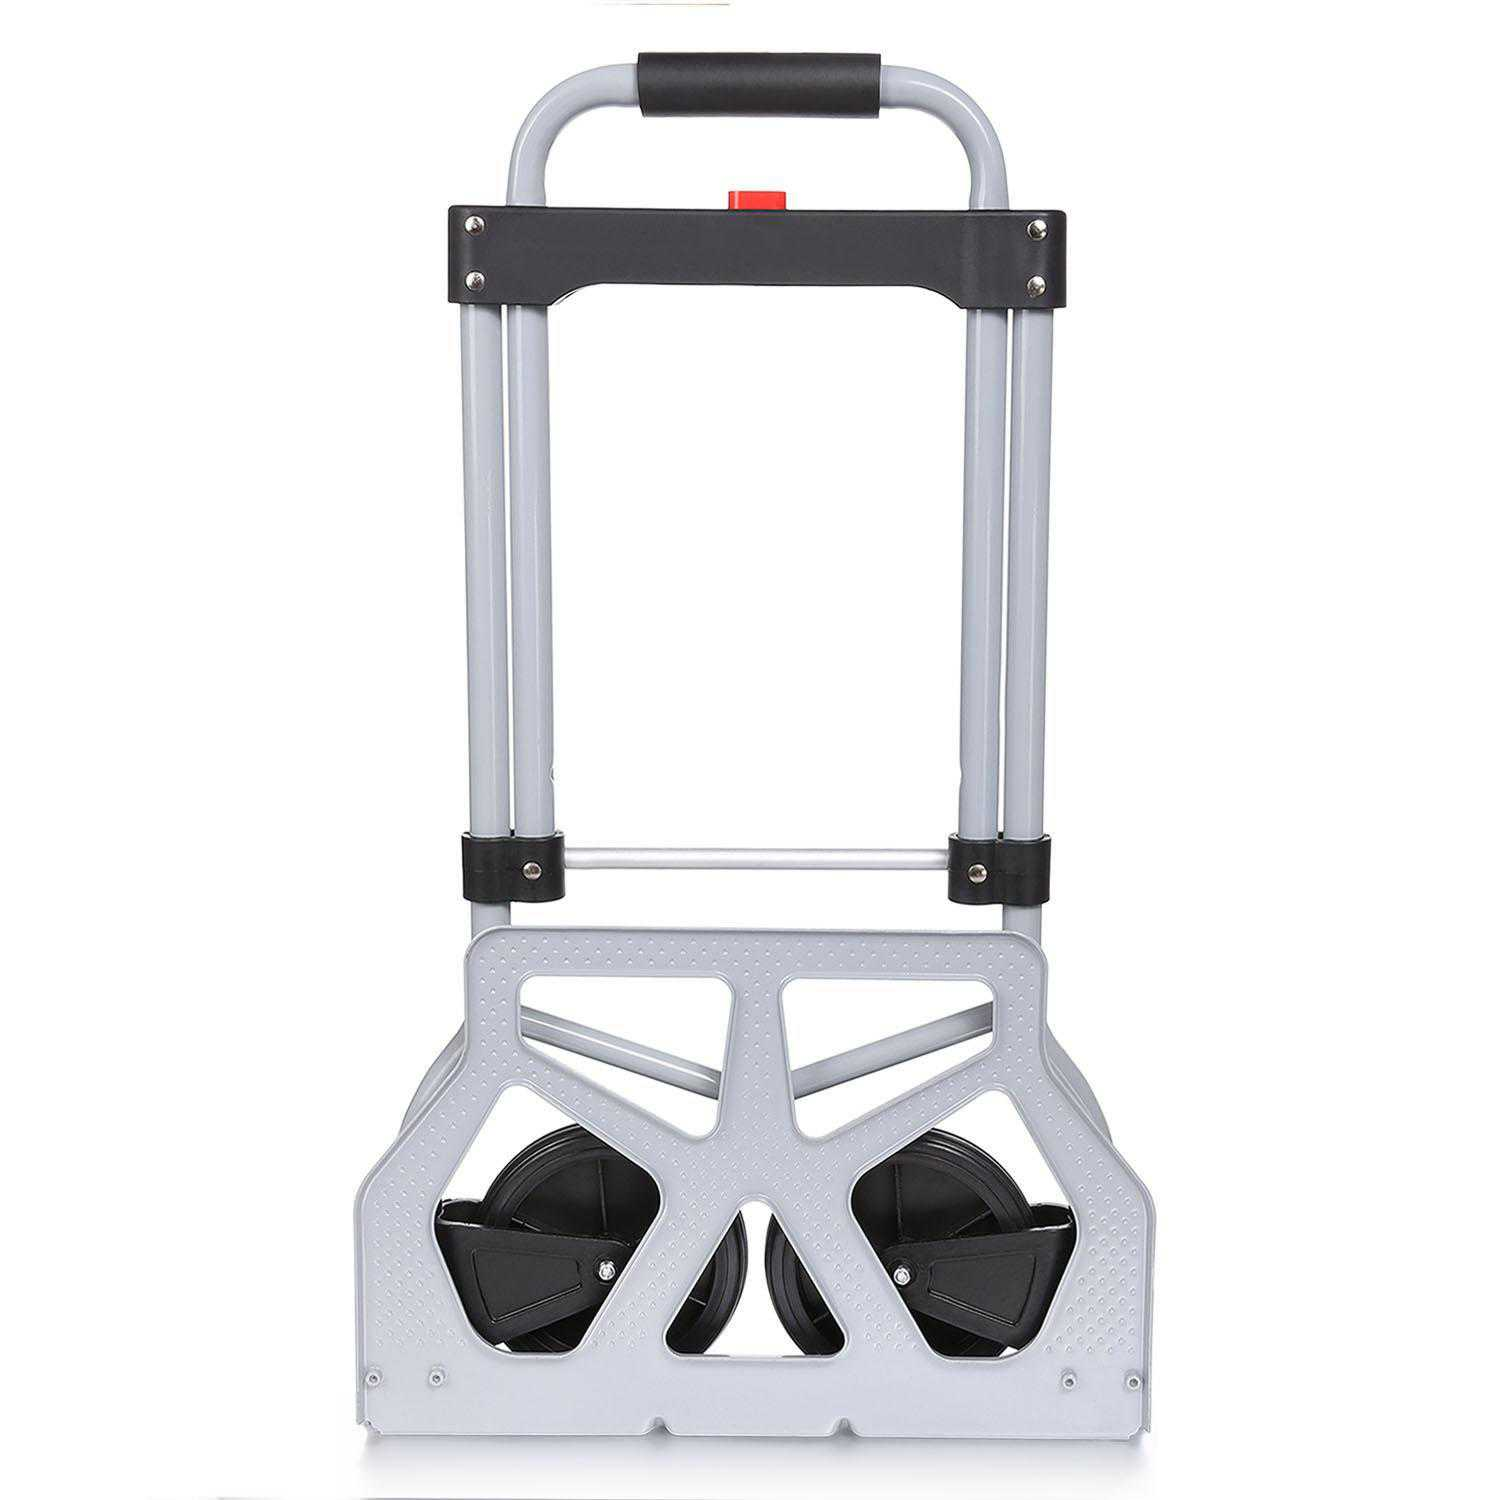 Clearance ! Portable Folding Hand Truck Dolly Luggage Carts, Silver, 220 lbs Capacity, Industrial/Travel/Shopping OCTAP